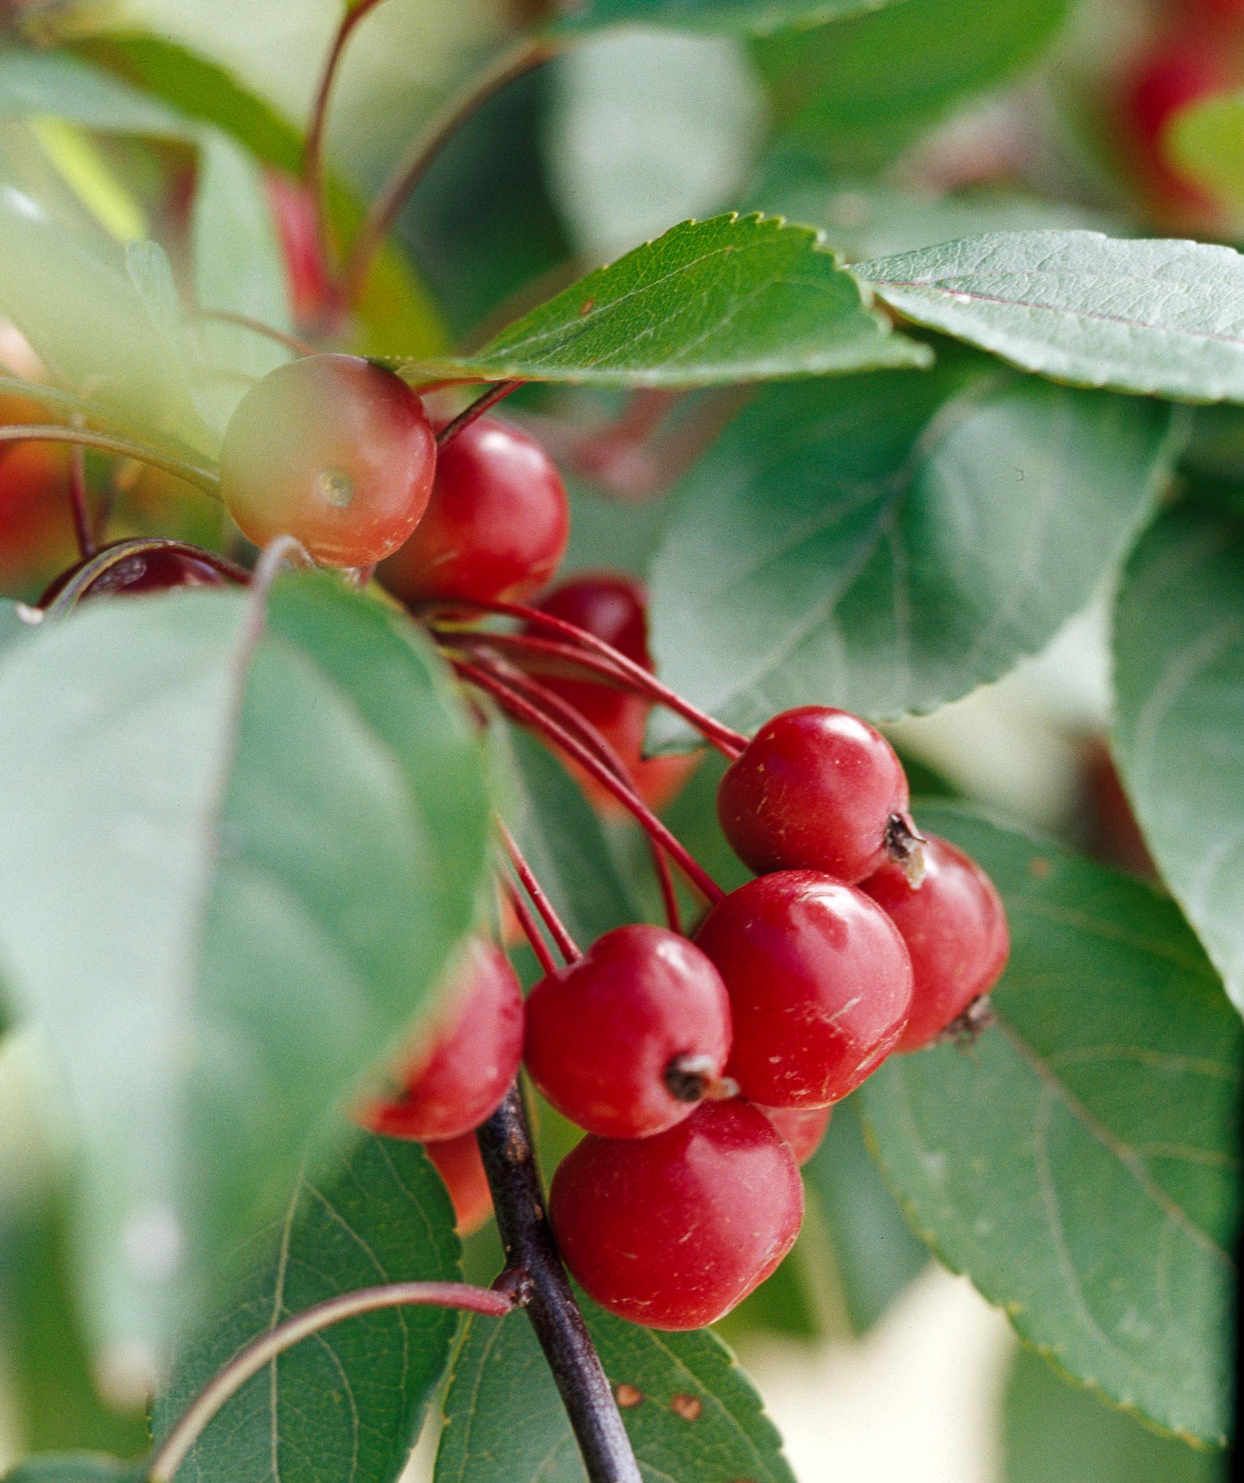 Profusion crabapple fruits in bunch on tree branch